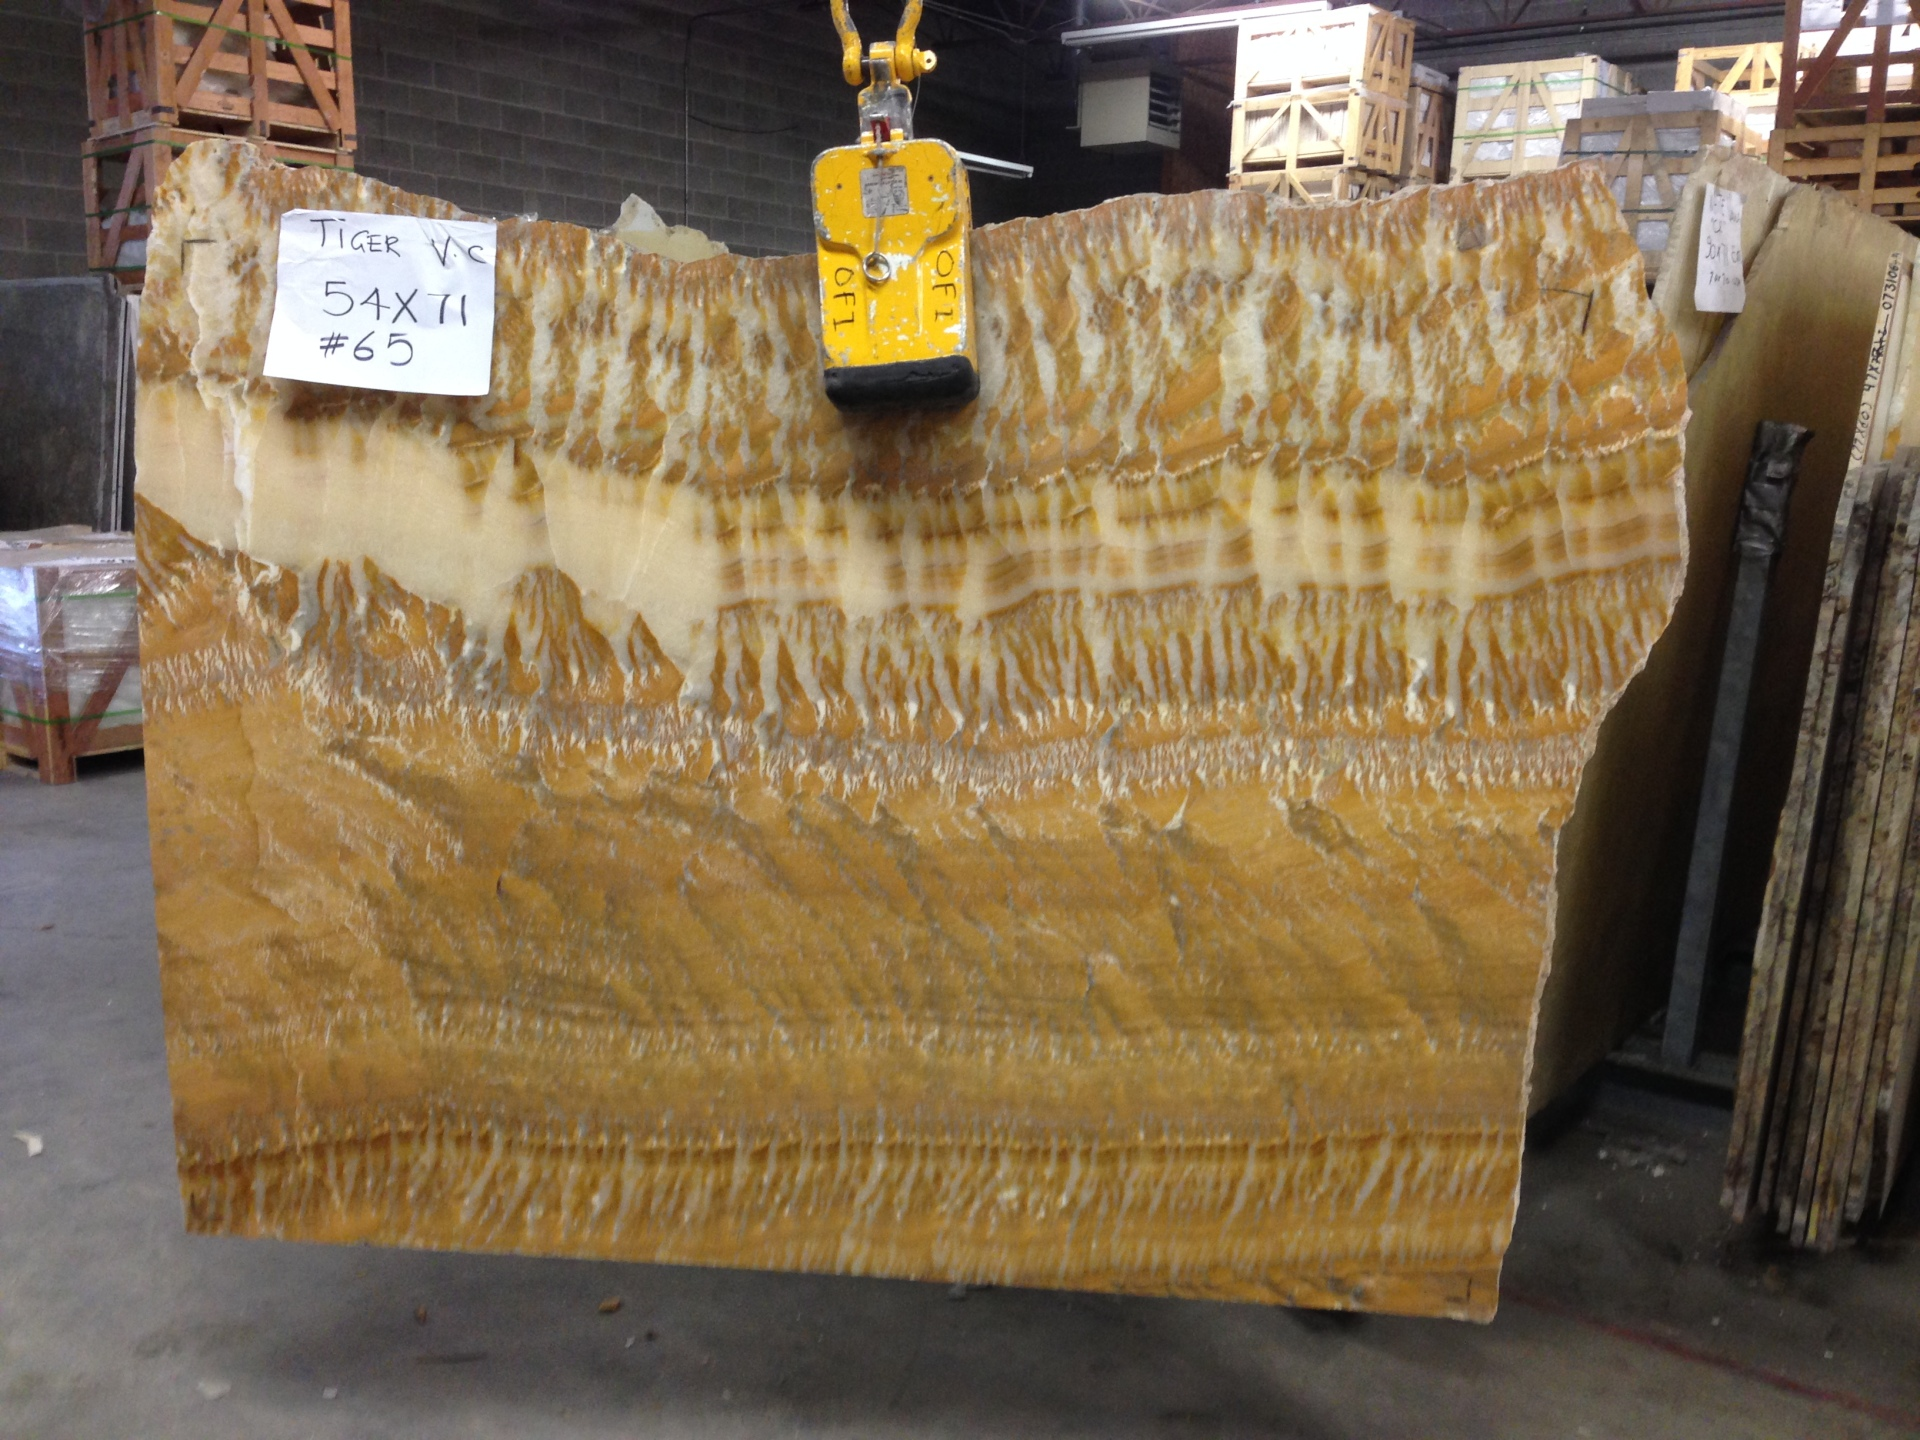 "Tiger 3/4"" Vein-Cut Polished Onyx Slabs (Inquire Upon Availability)"